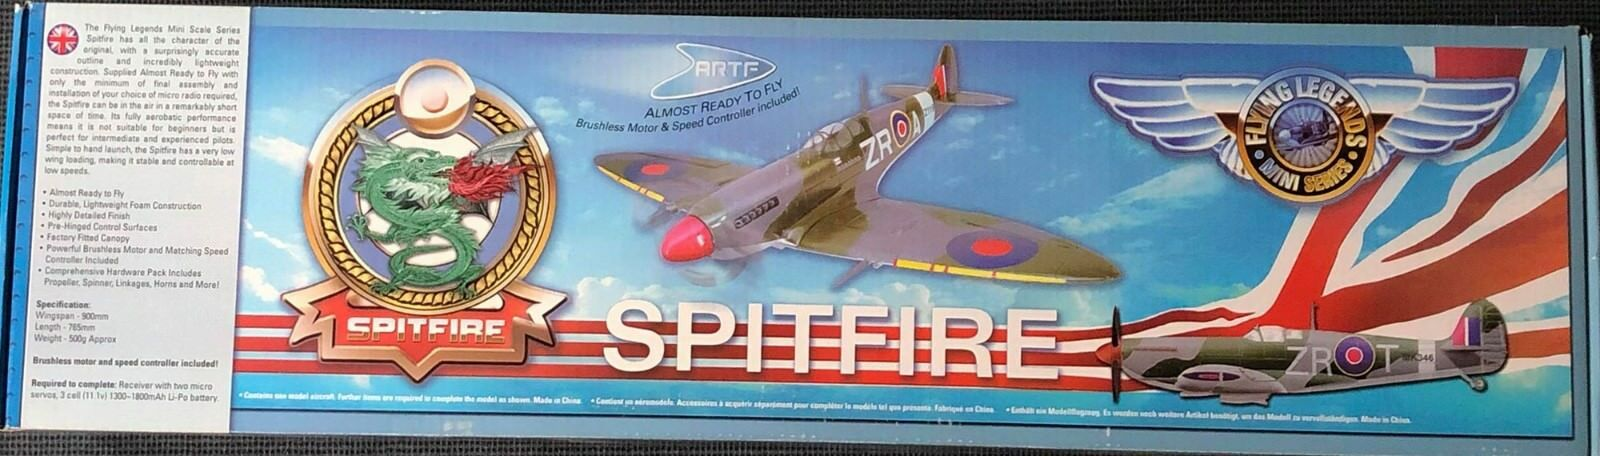 Spitfire almost ready to fly Brushless Motore Regolatore